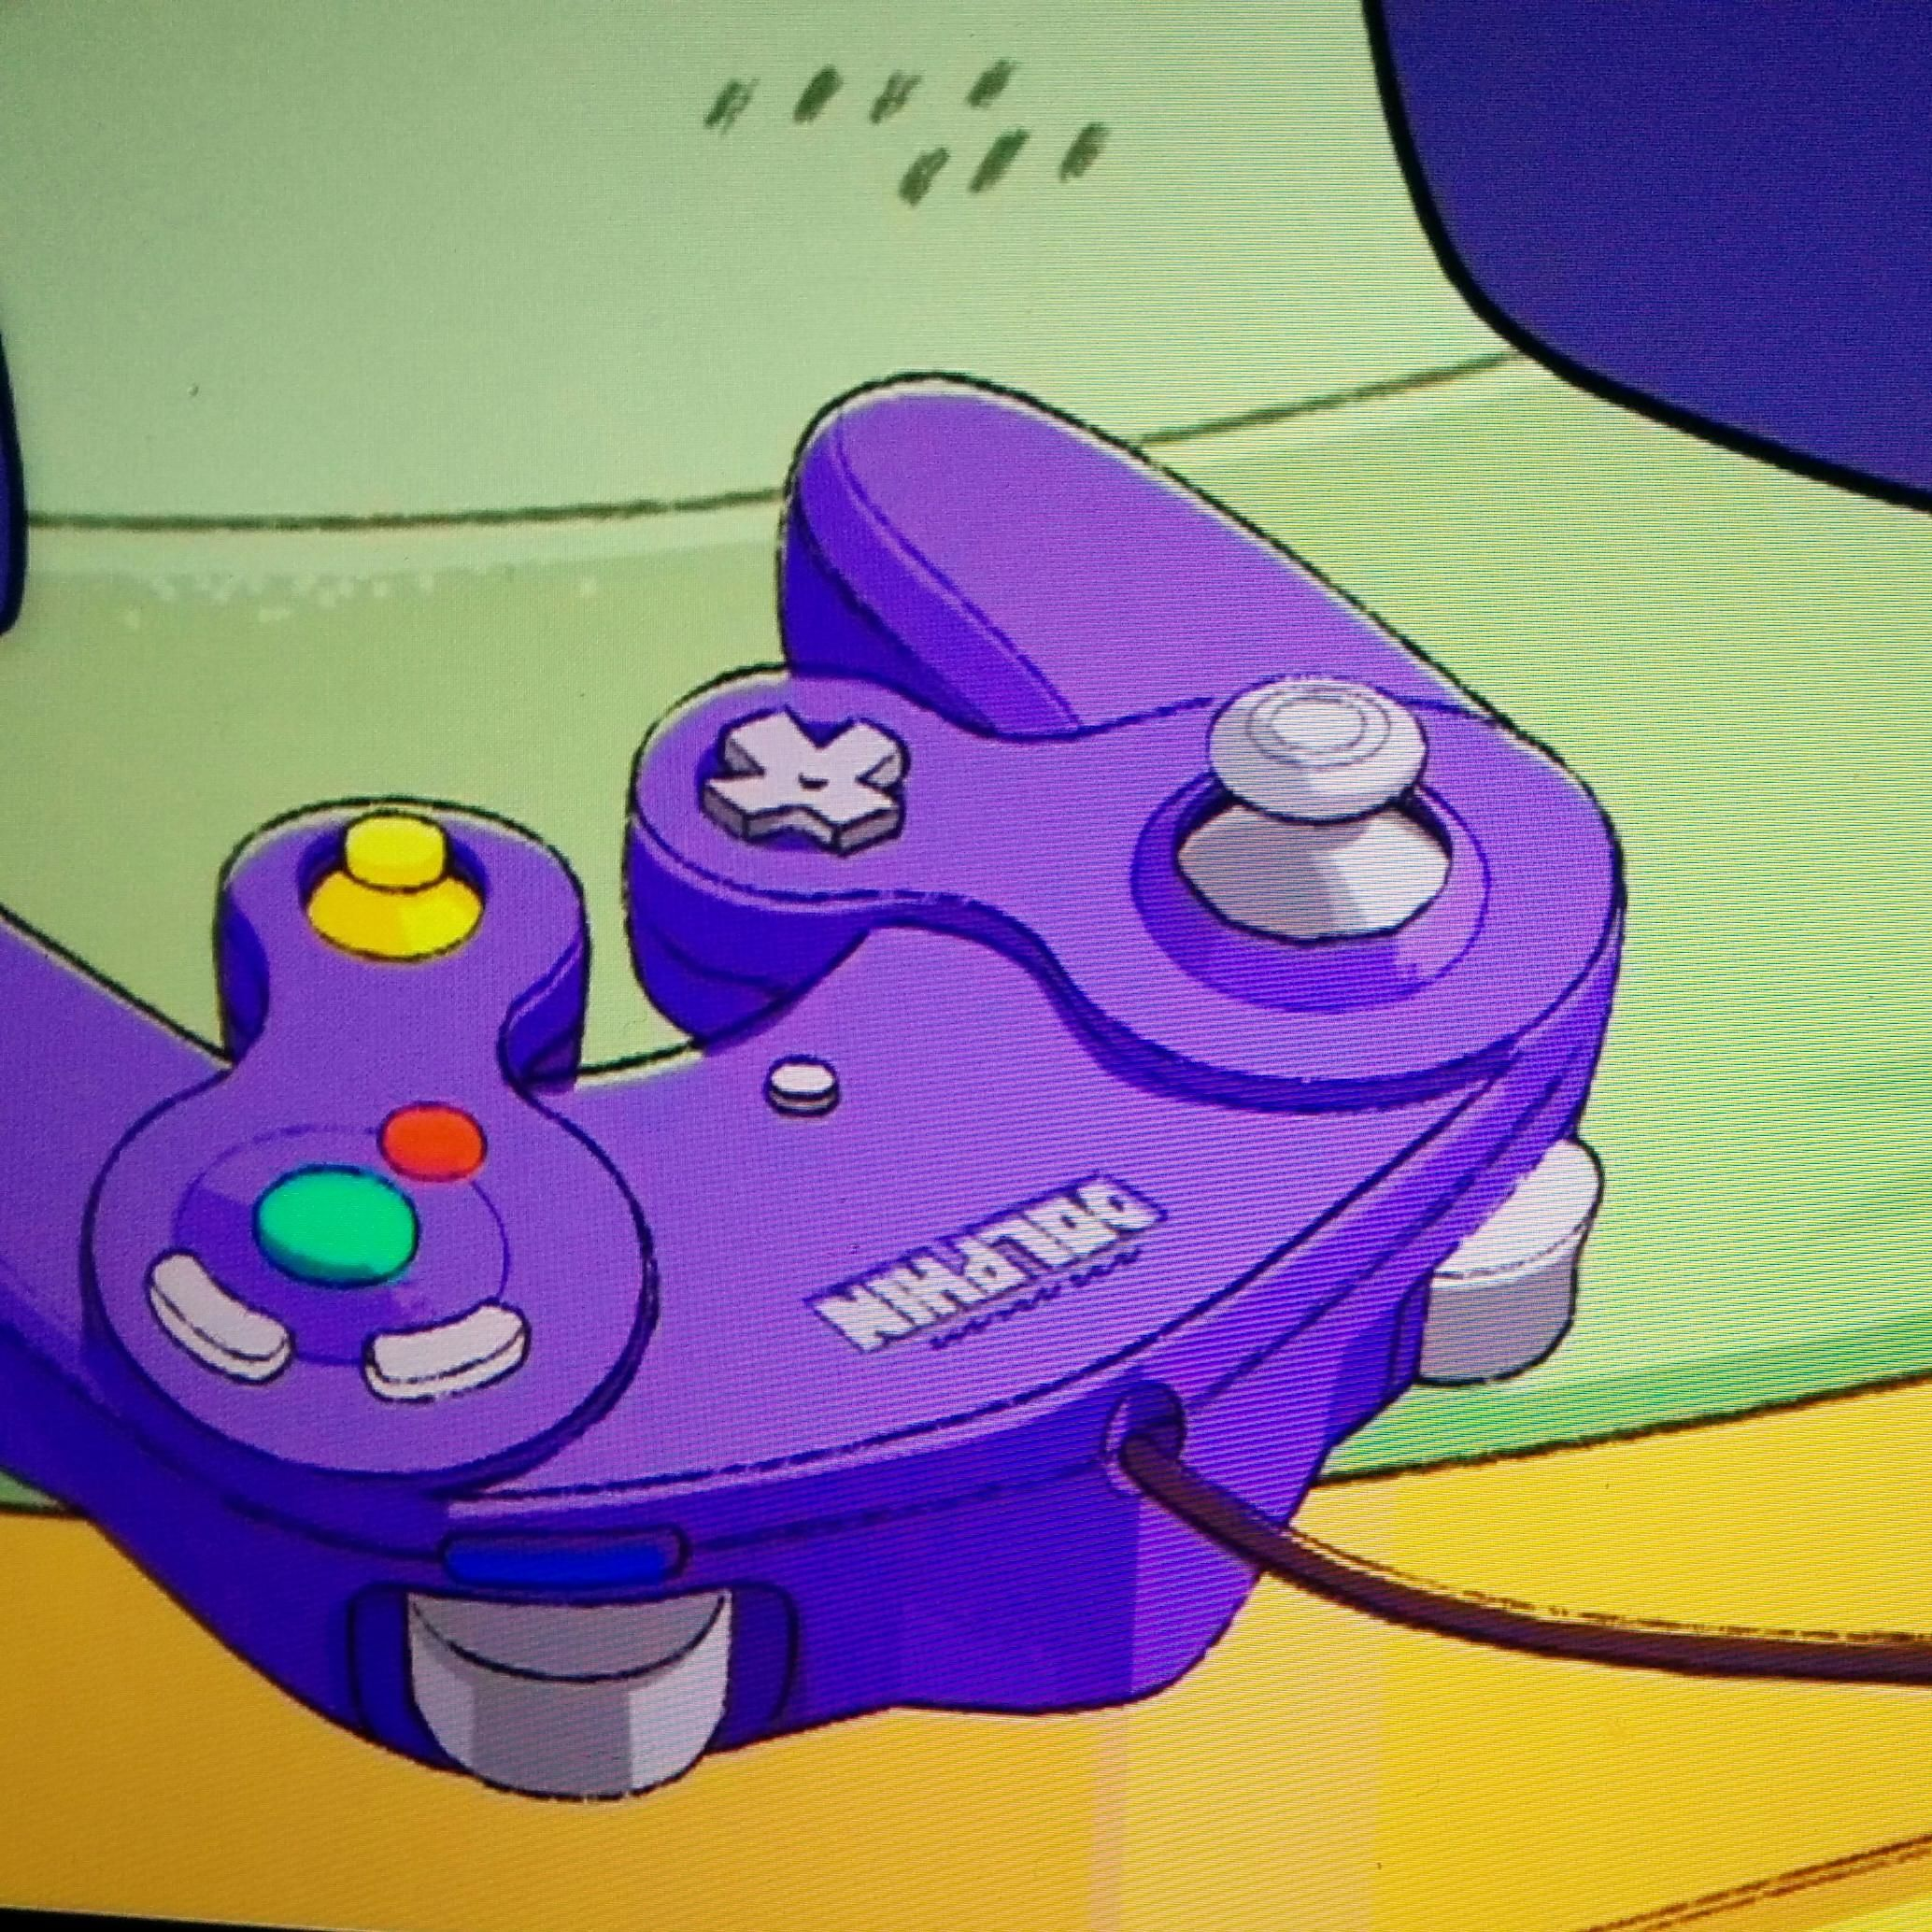 Has anyone else noticed the GameCube controller on S03E19(steven